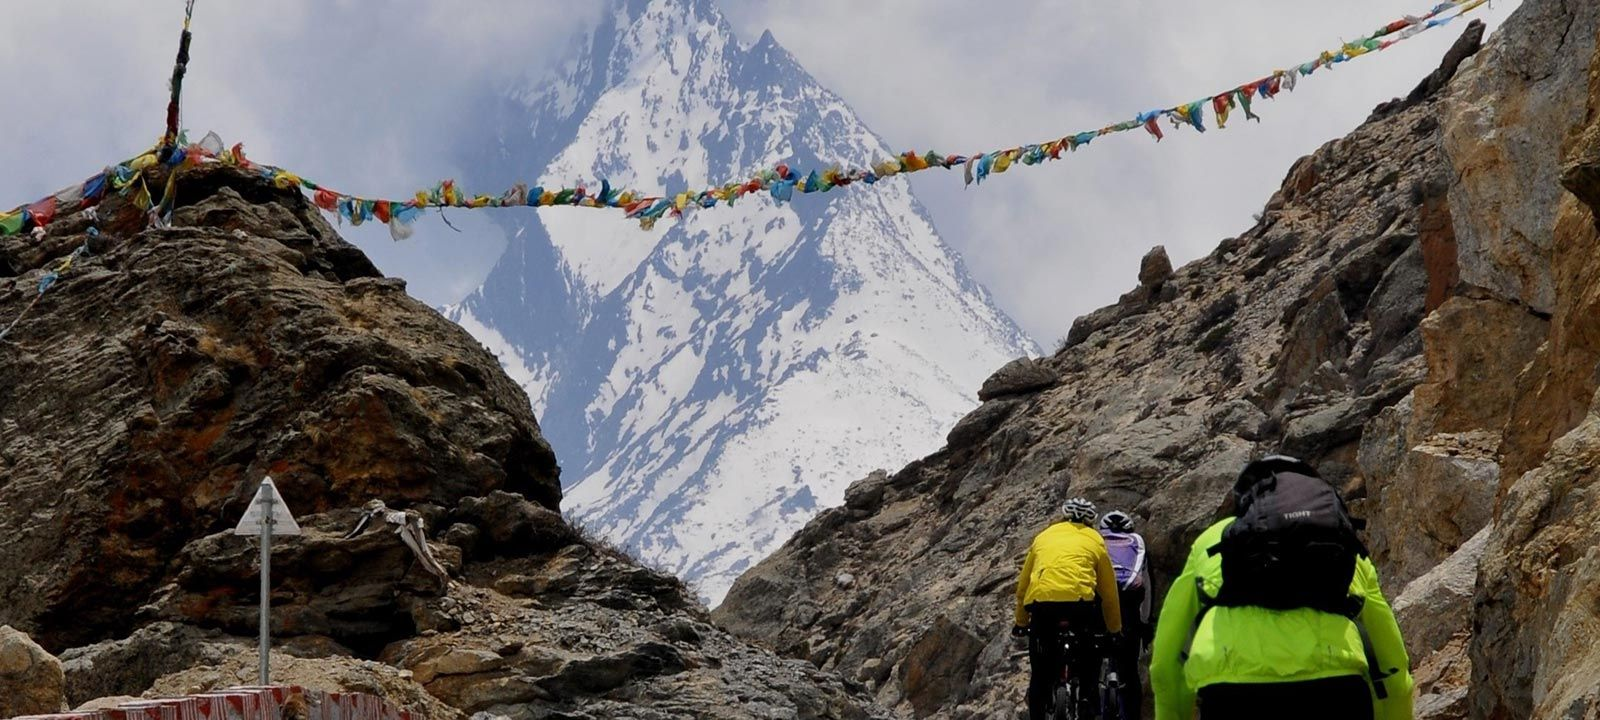 Tibet - Cycling in the Tibetan Plateaus